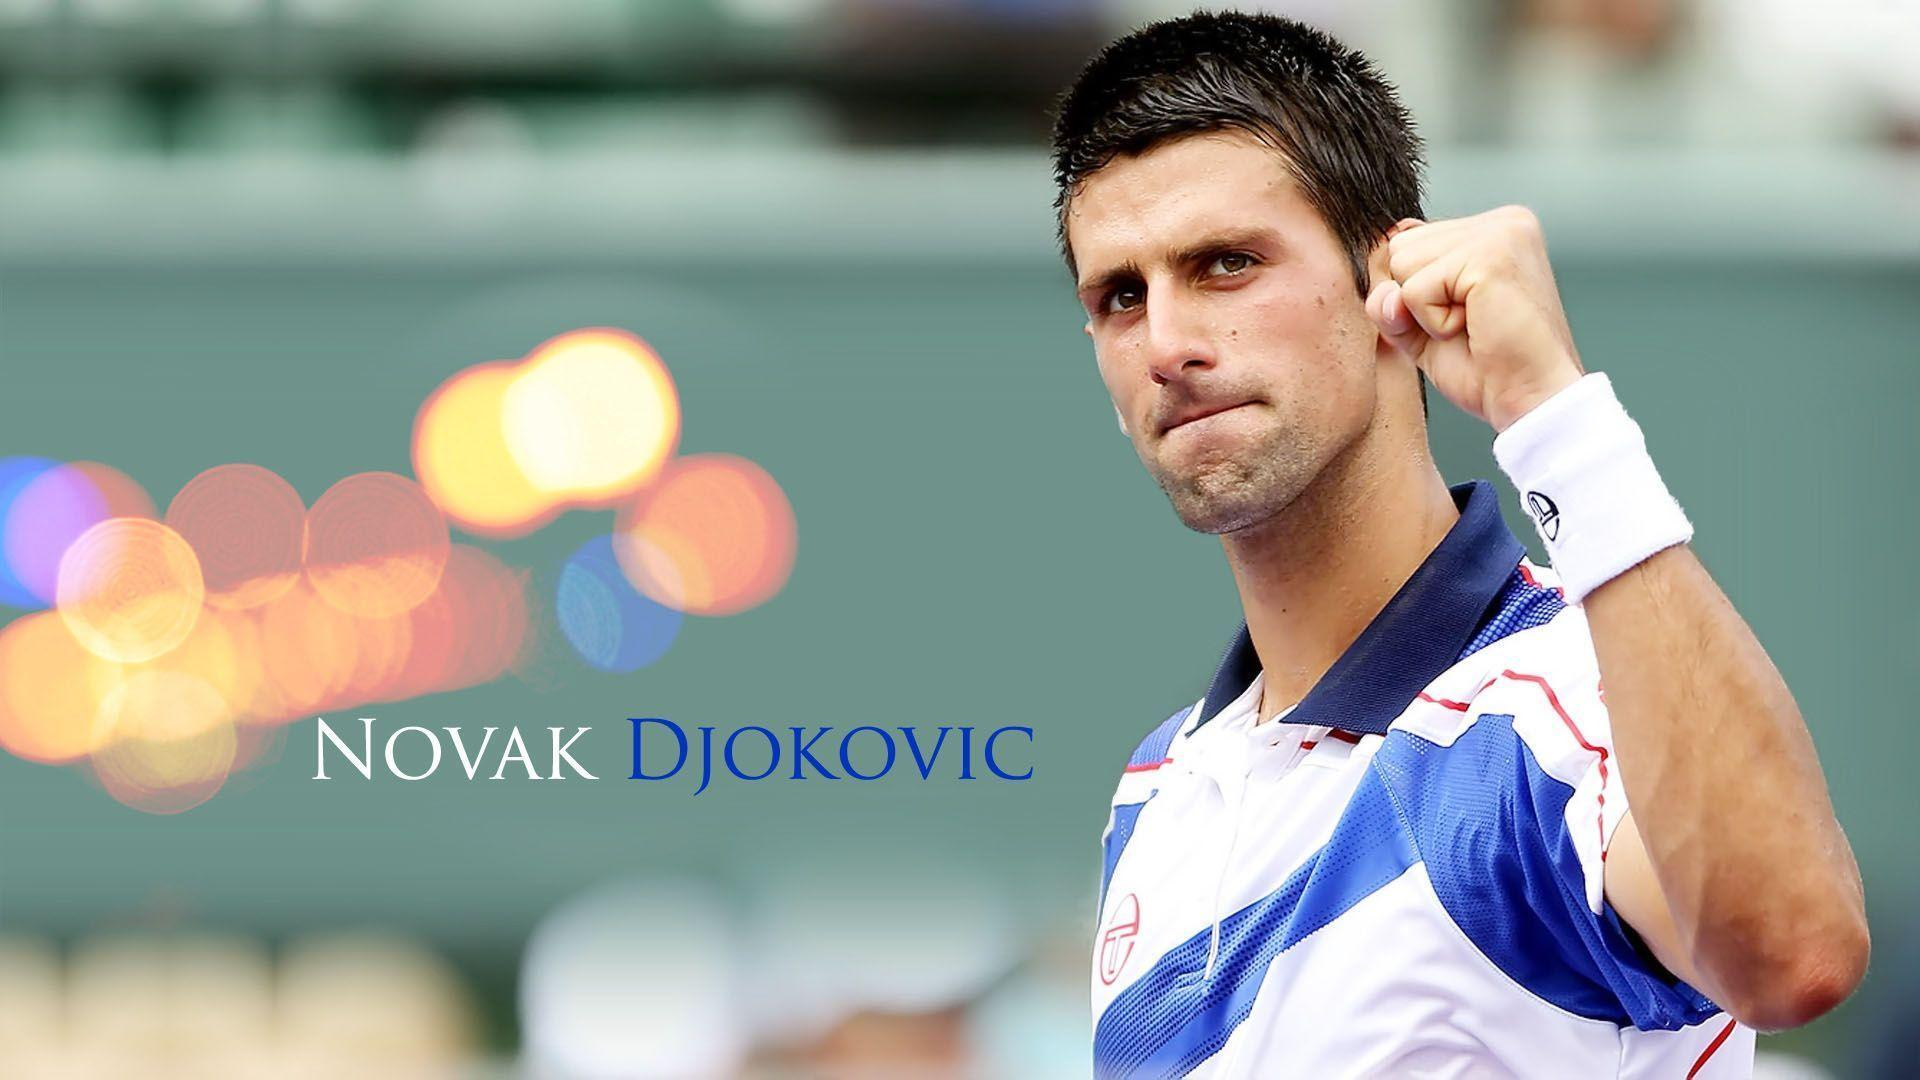 Champion Novak Djokovic Wimbledon 2014 Wallpaper , Free Widescreen ...